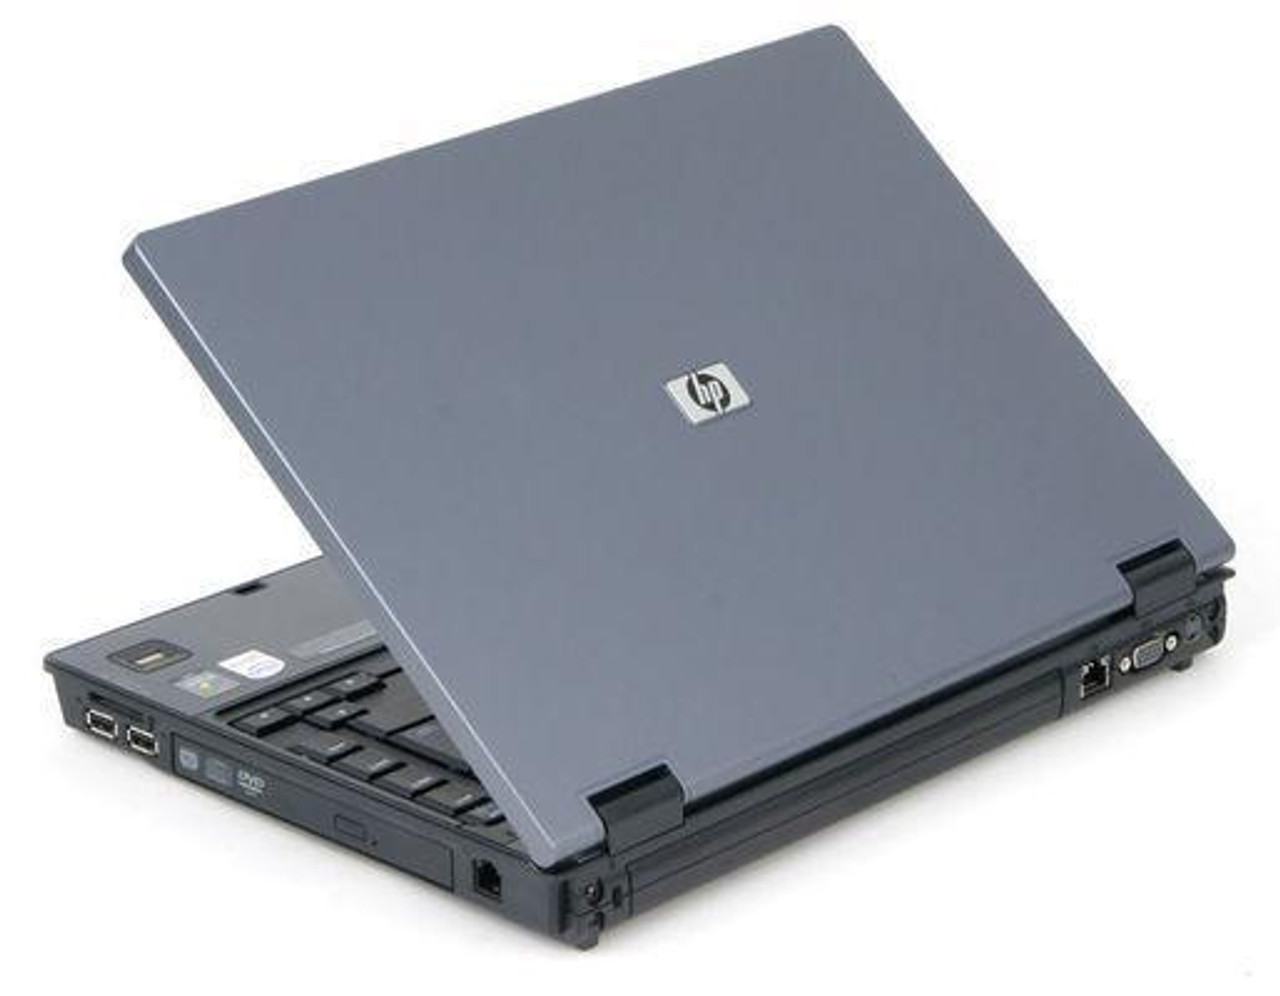 HP Compaq 6910p Laptop Intel Core 2 Duo 2.4GHz, 4GB Ram, 80GB HDD, DVD-RW, Windows 7 Pro 64 Notebook